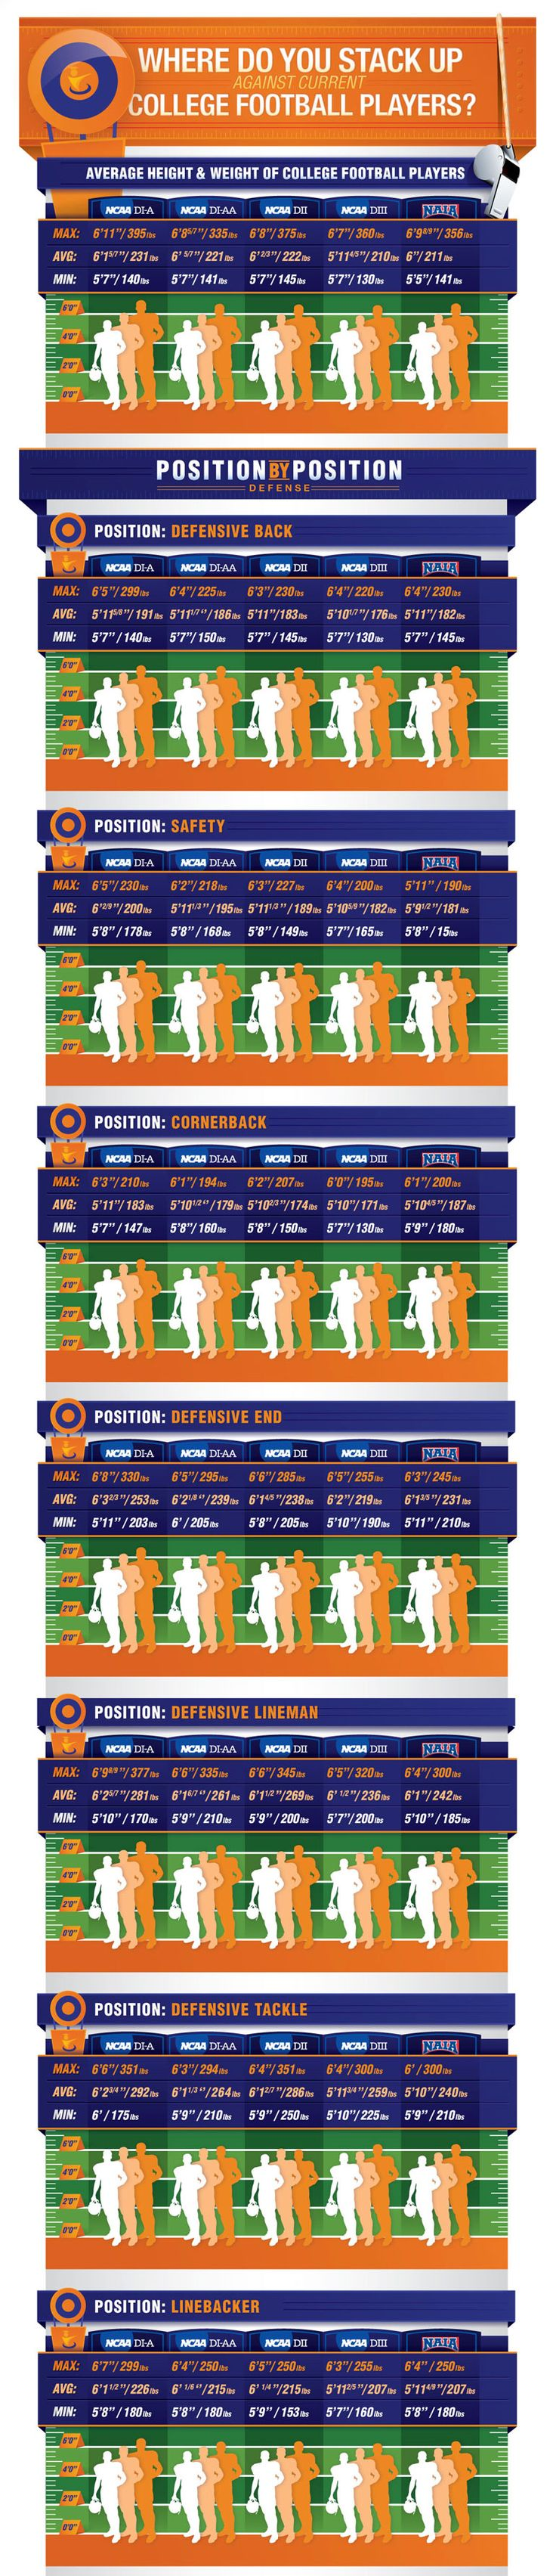 Are you a defensive football player? Check out where you stack up against other defensive positions with this cool infographic!